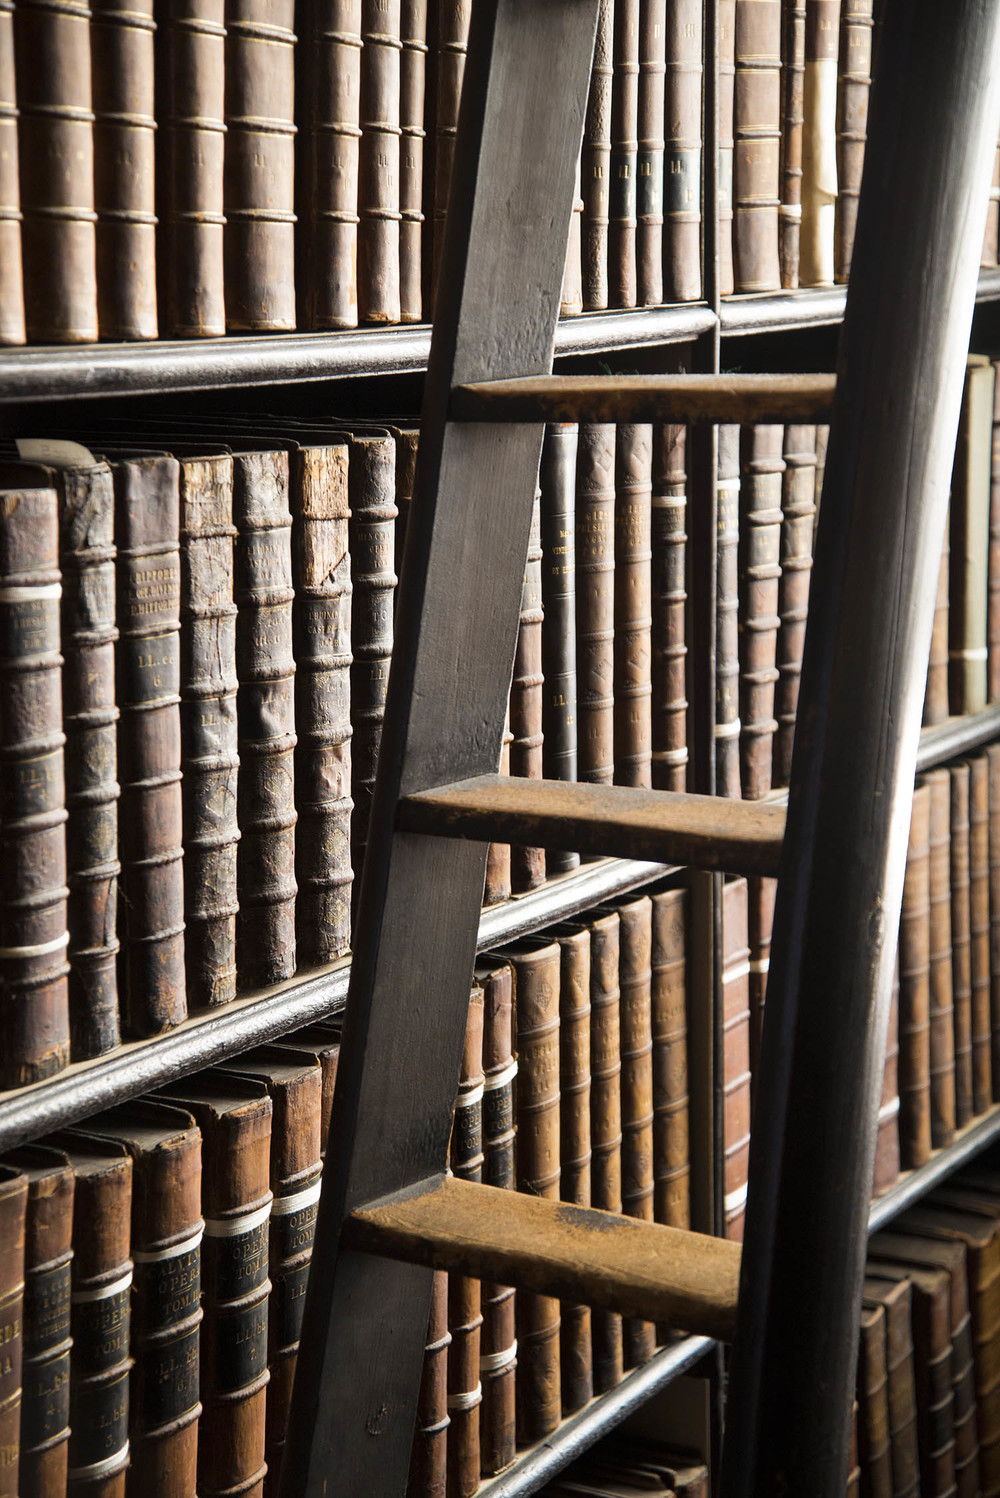 Shelf and ladder detail, The Long Room, Old Library, 1712, Trinity College, Dublin